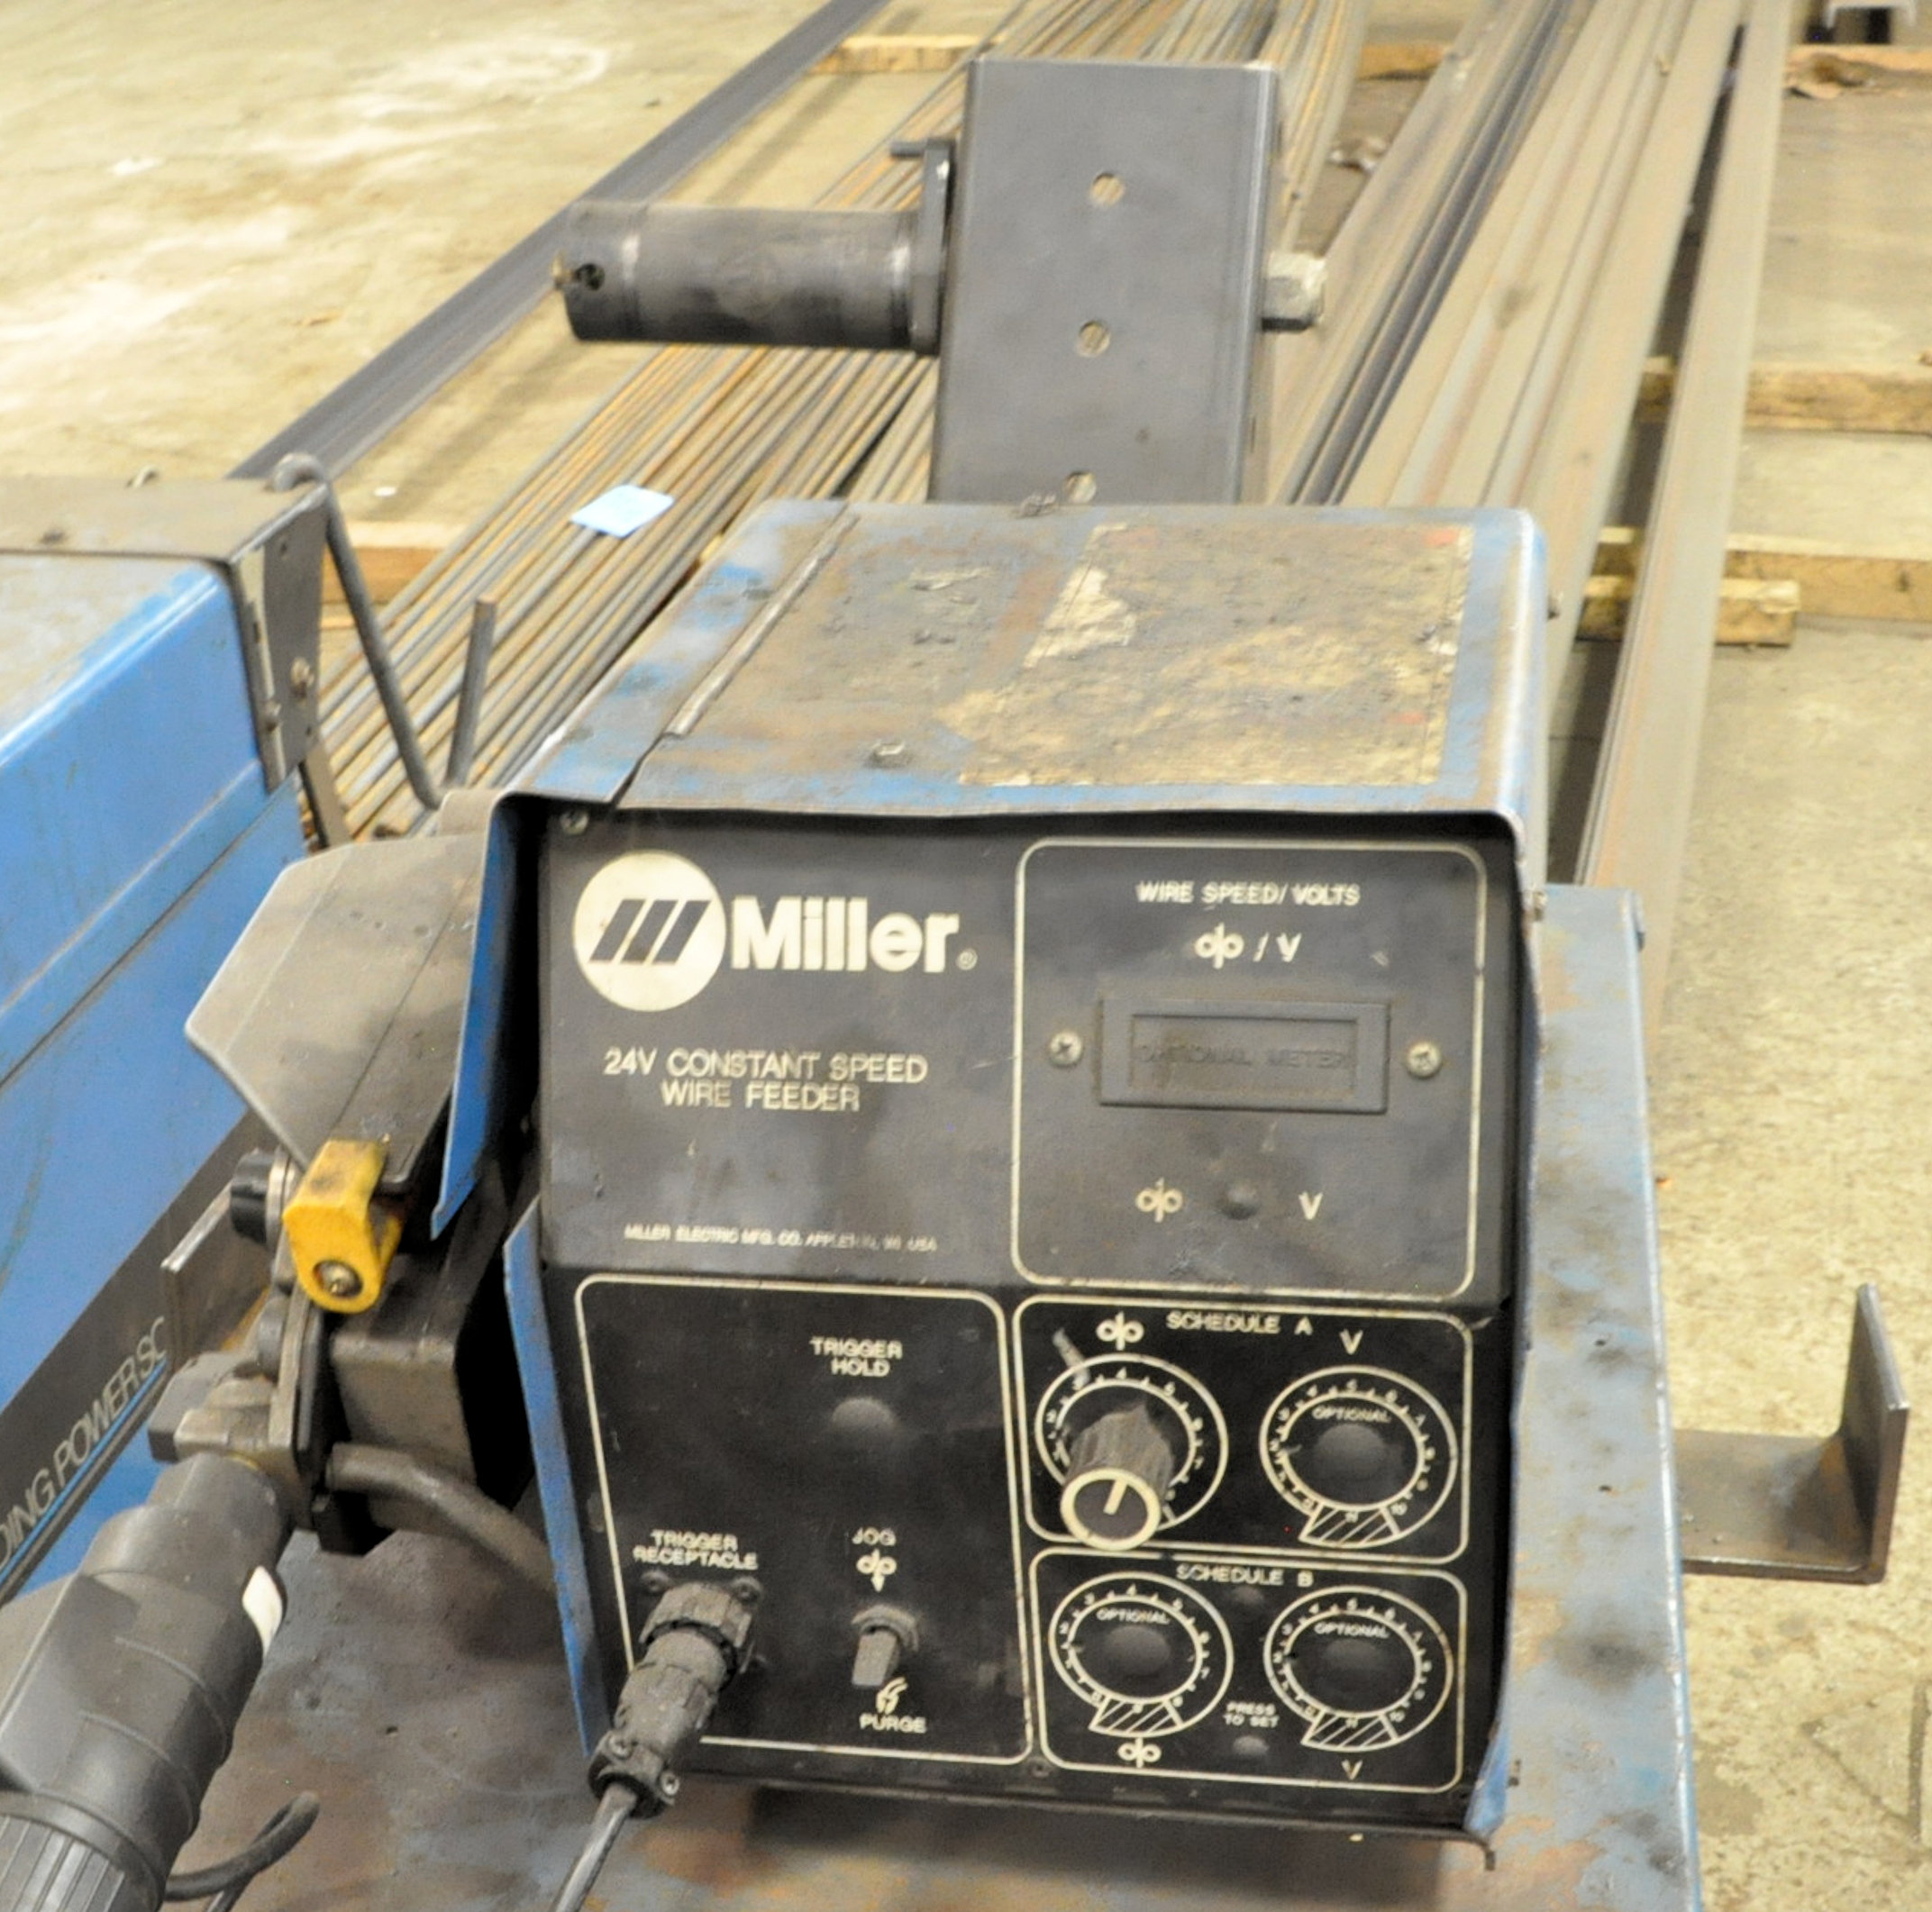 Miller Deltaweld 451, 450-Amp Capacity CV DC Arc Welding Power Source with Miller S-60 Wire Feeder - Image 2 of 3